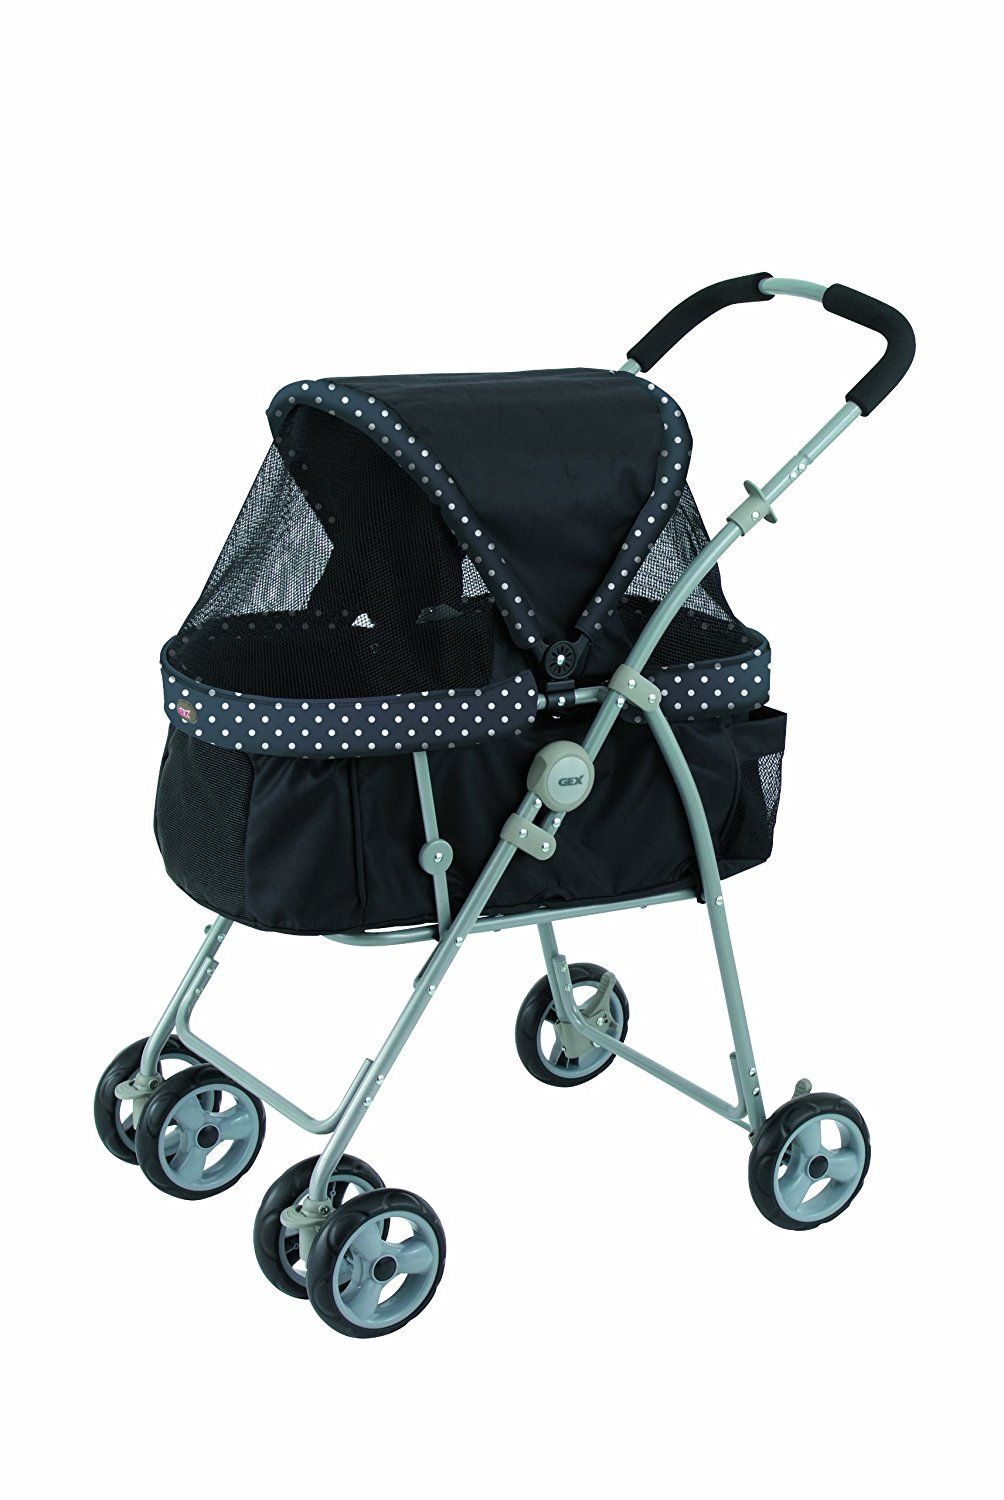 Oxford Pet Stroller Ebay Gex Cart Multi Head For Black Doggie Japan Import See